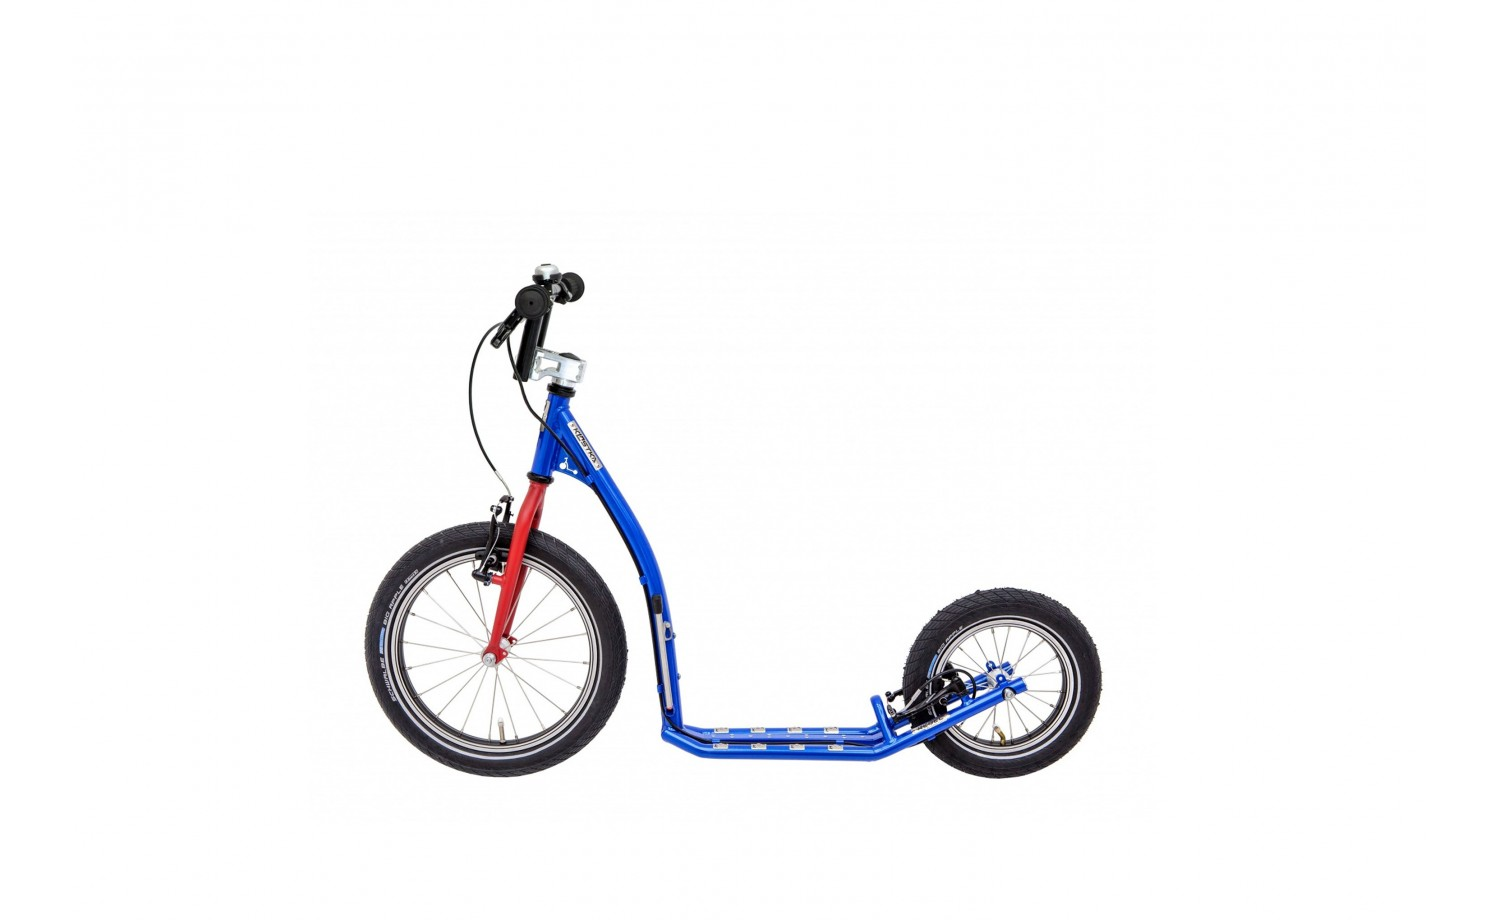 Footbike KOSTKA REBEL MAX KID (G5) - 20 years limited edition